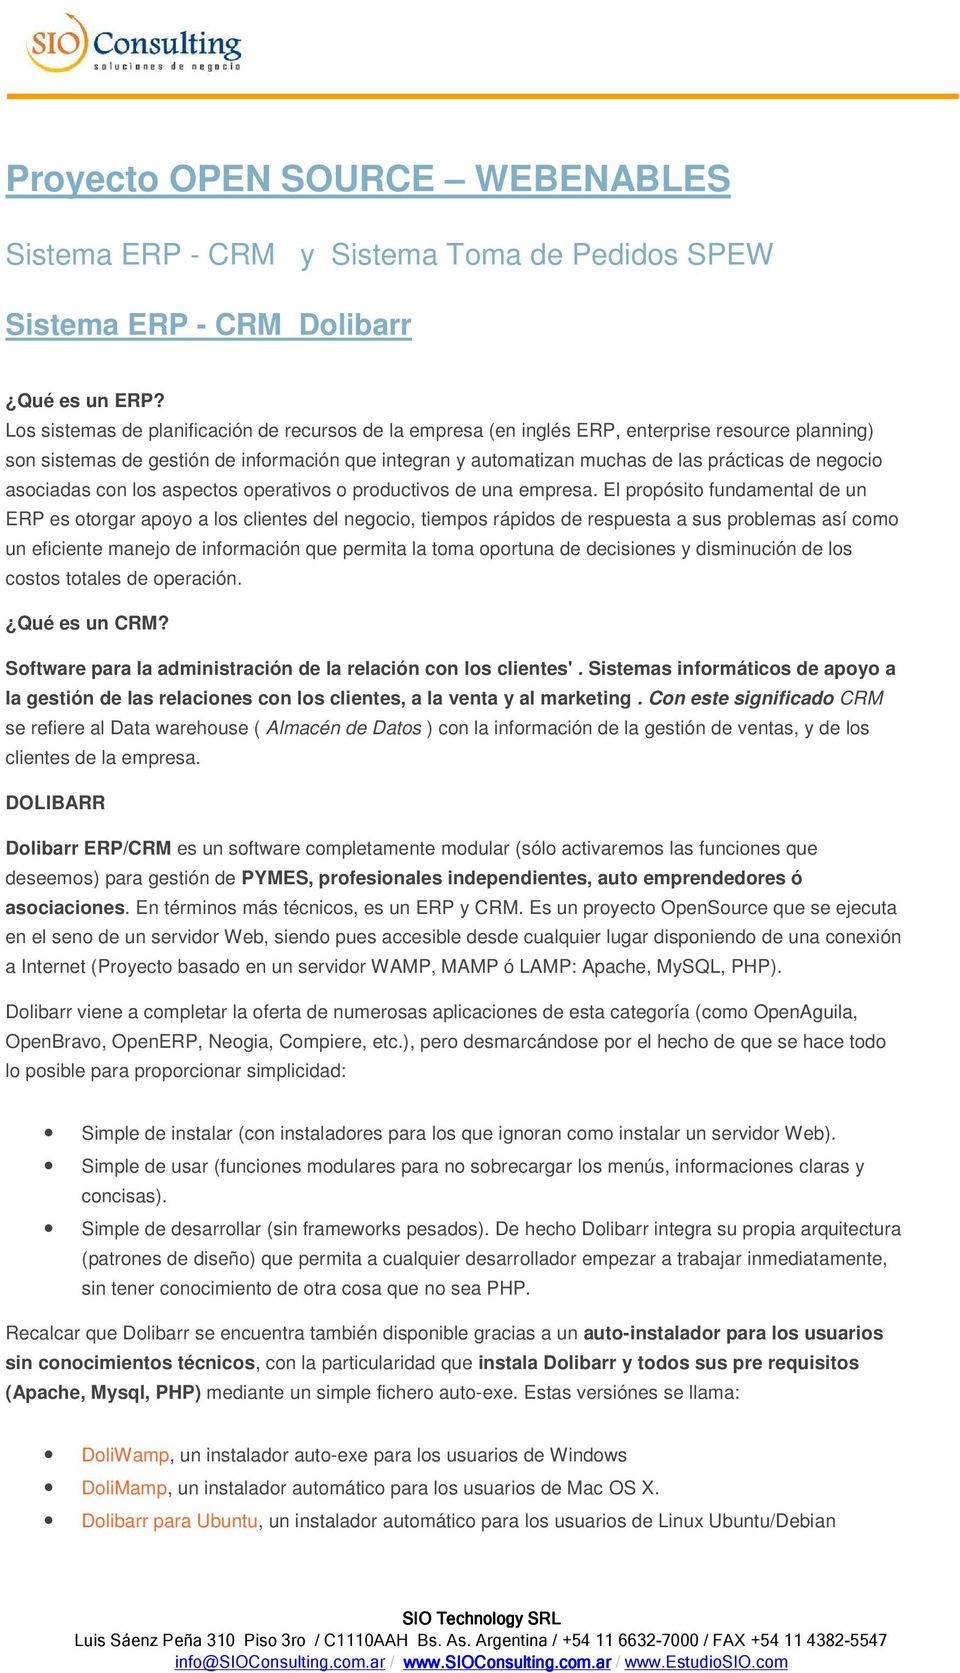 Proyecto OPEN SOURCE WEBENABLES - PDF